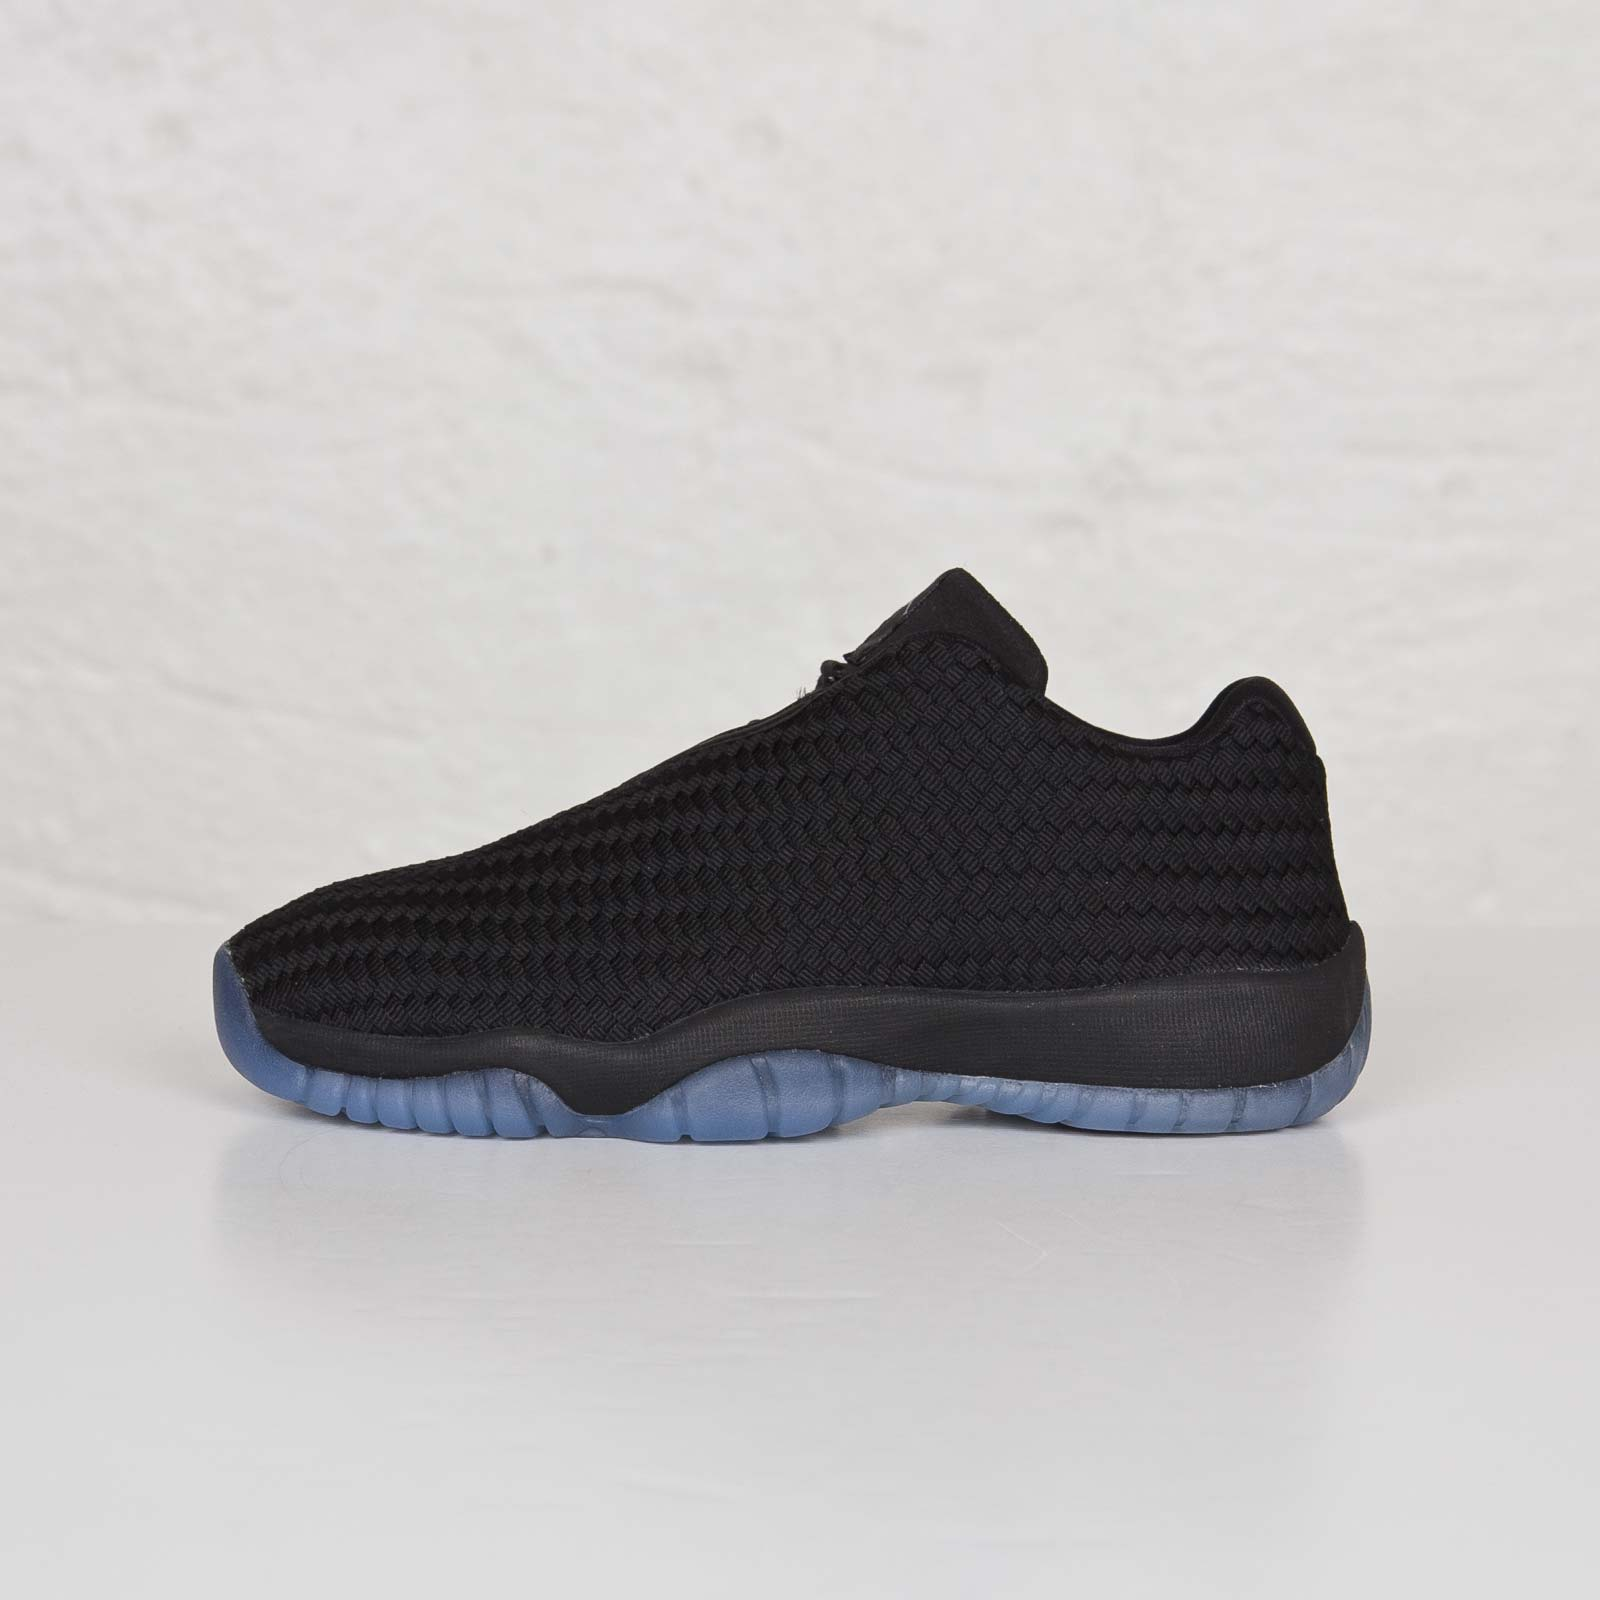 pretty nice 0e9f3 17208 Jordan Brand Air Jordan Future Low (GS) - 724813-005 ...